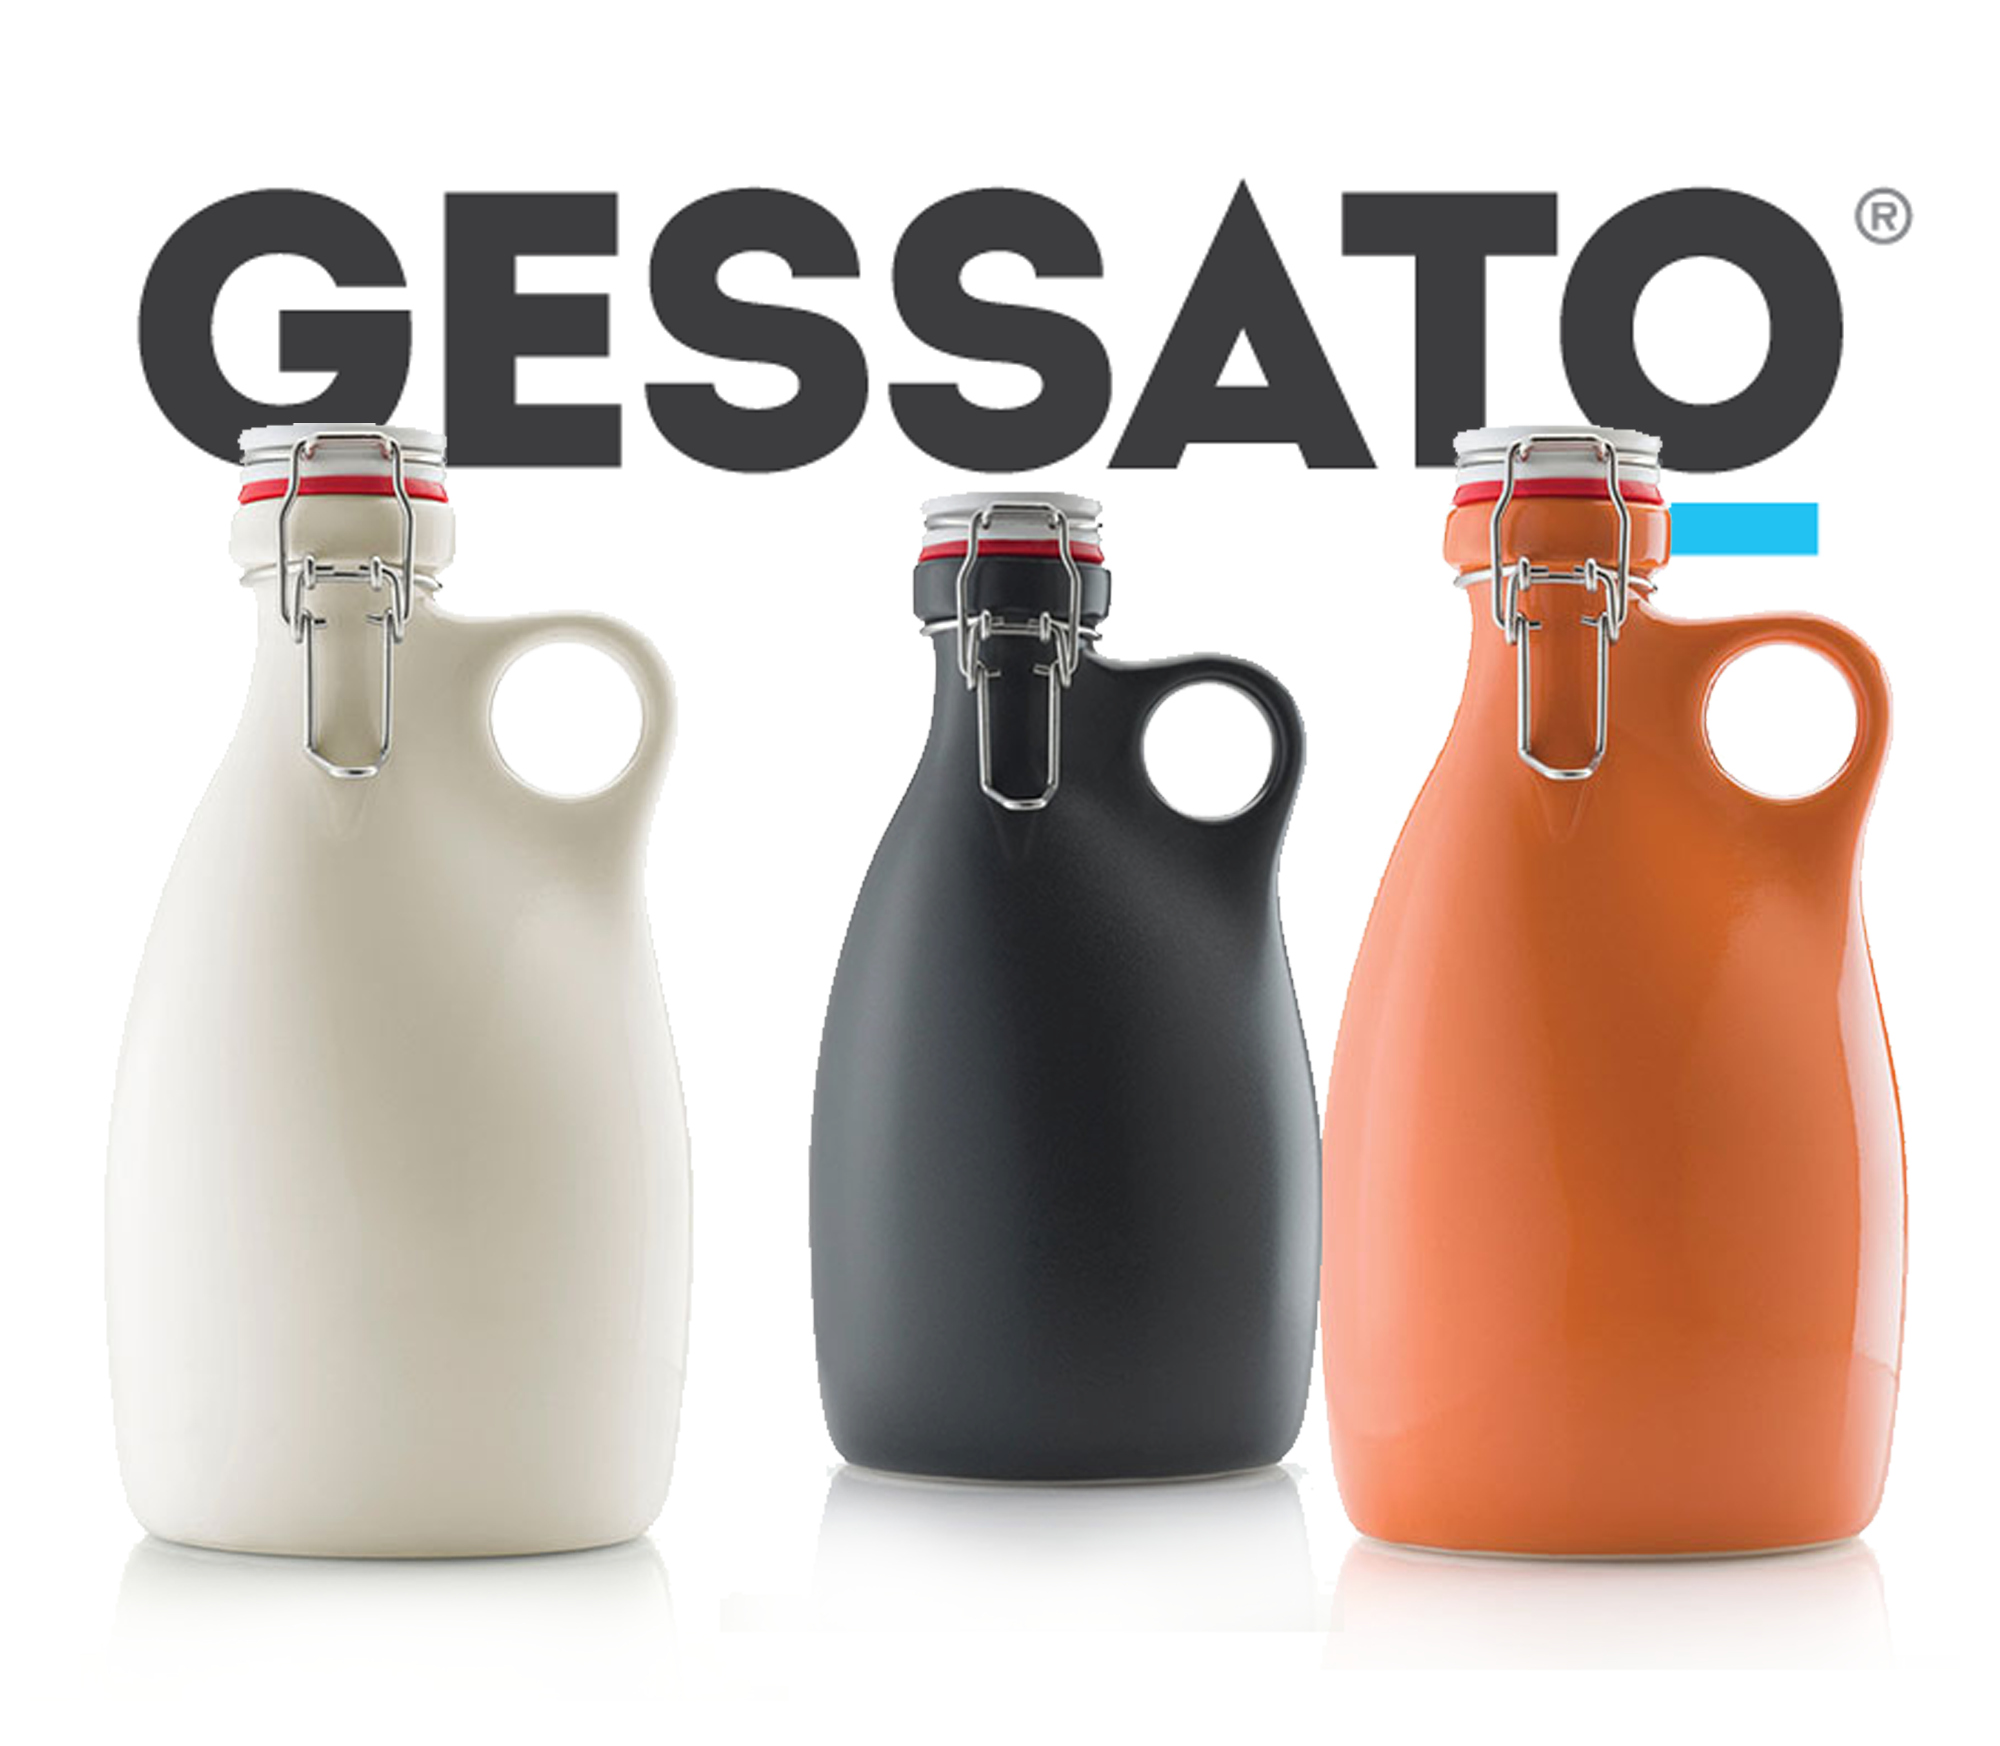 gessato_sale_orange_vessel_growlers_totally_awesome.png